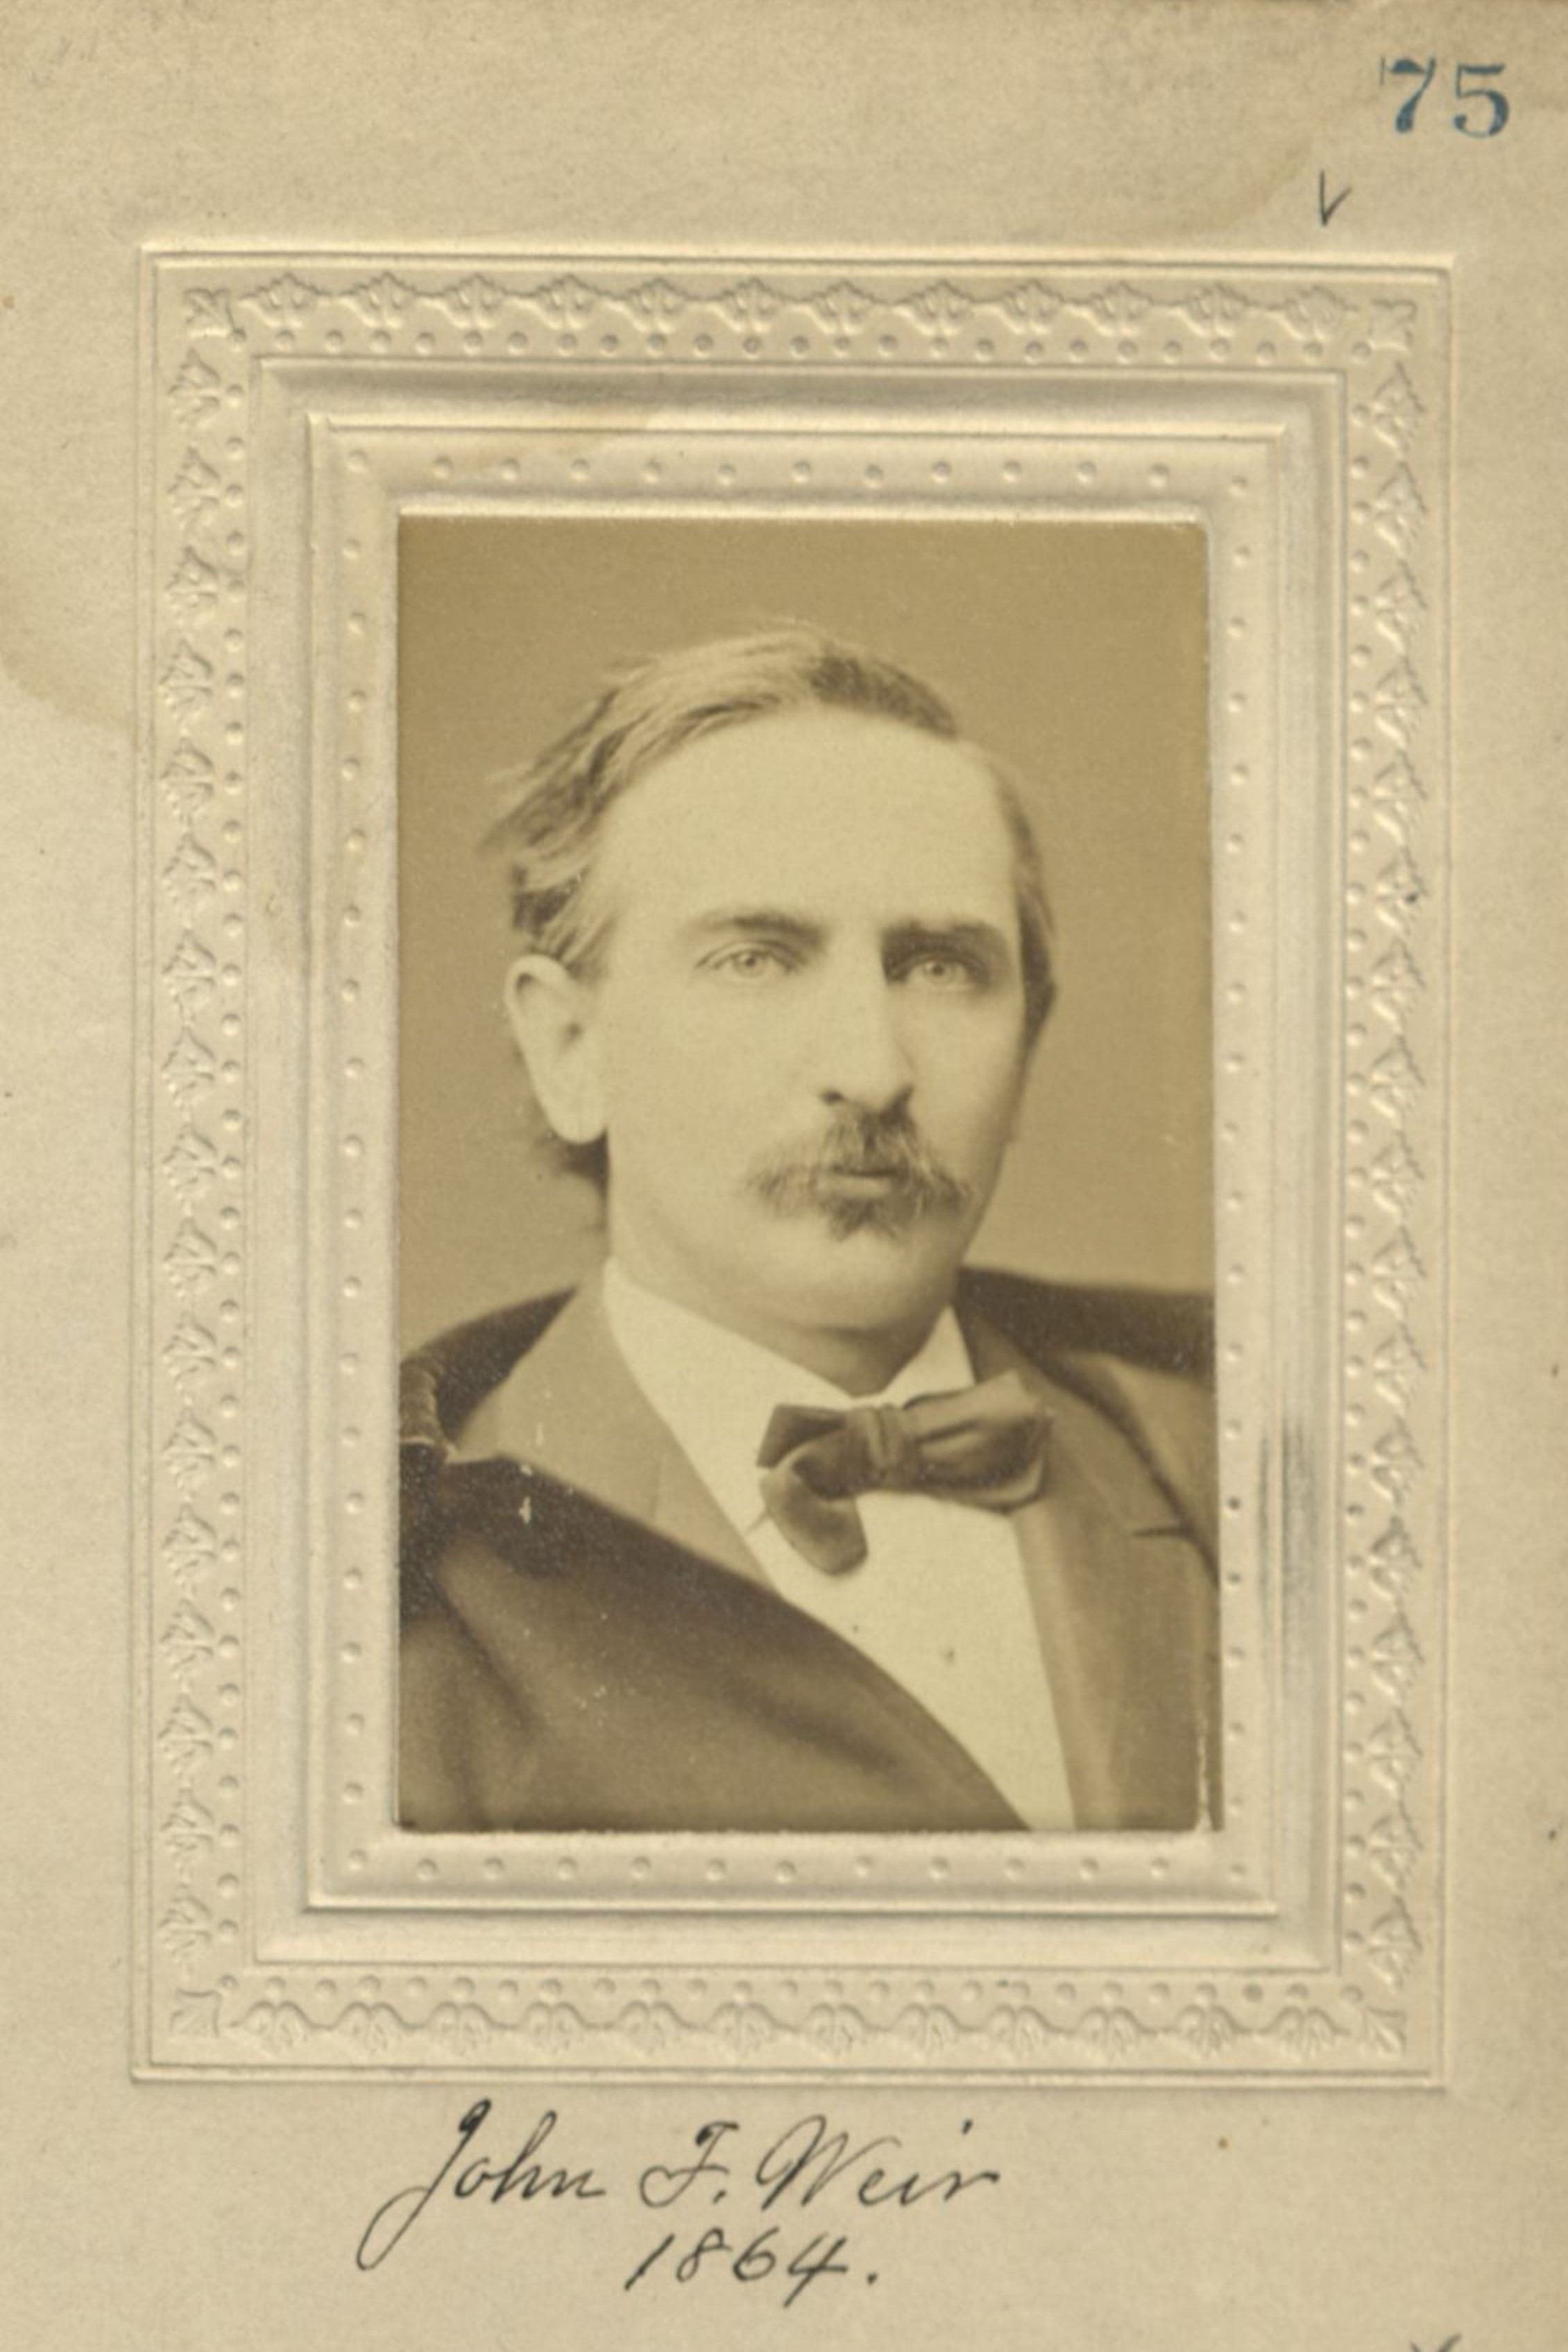 Member portrait of John F. Weir